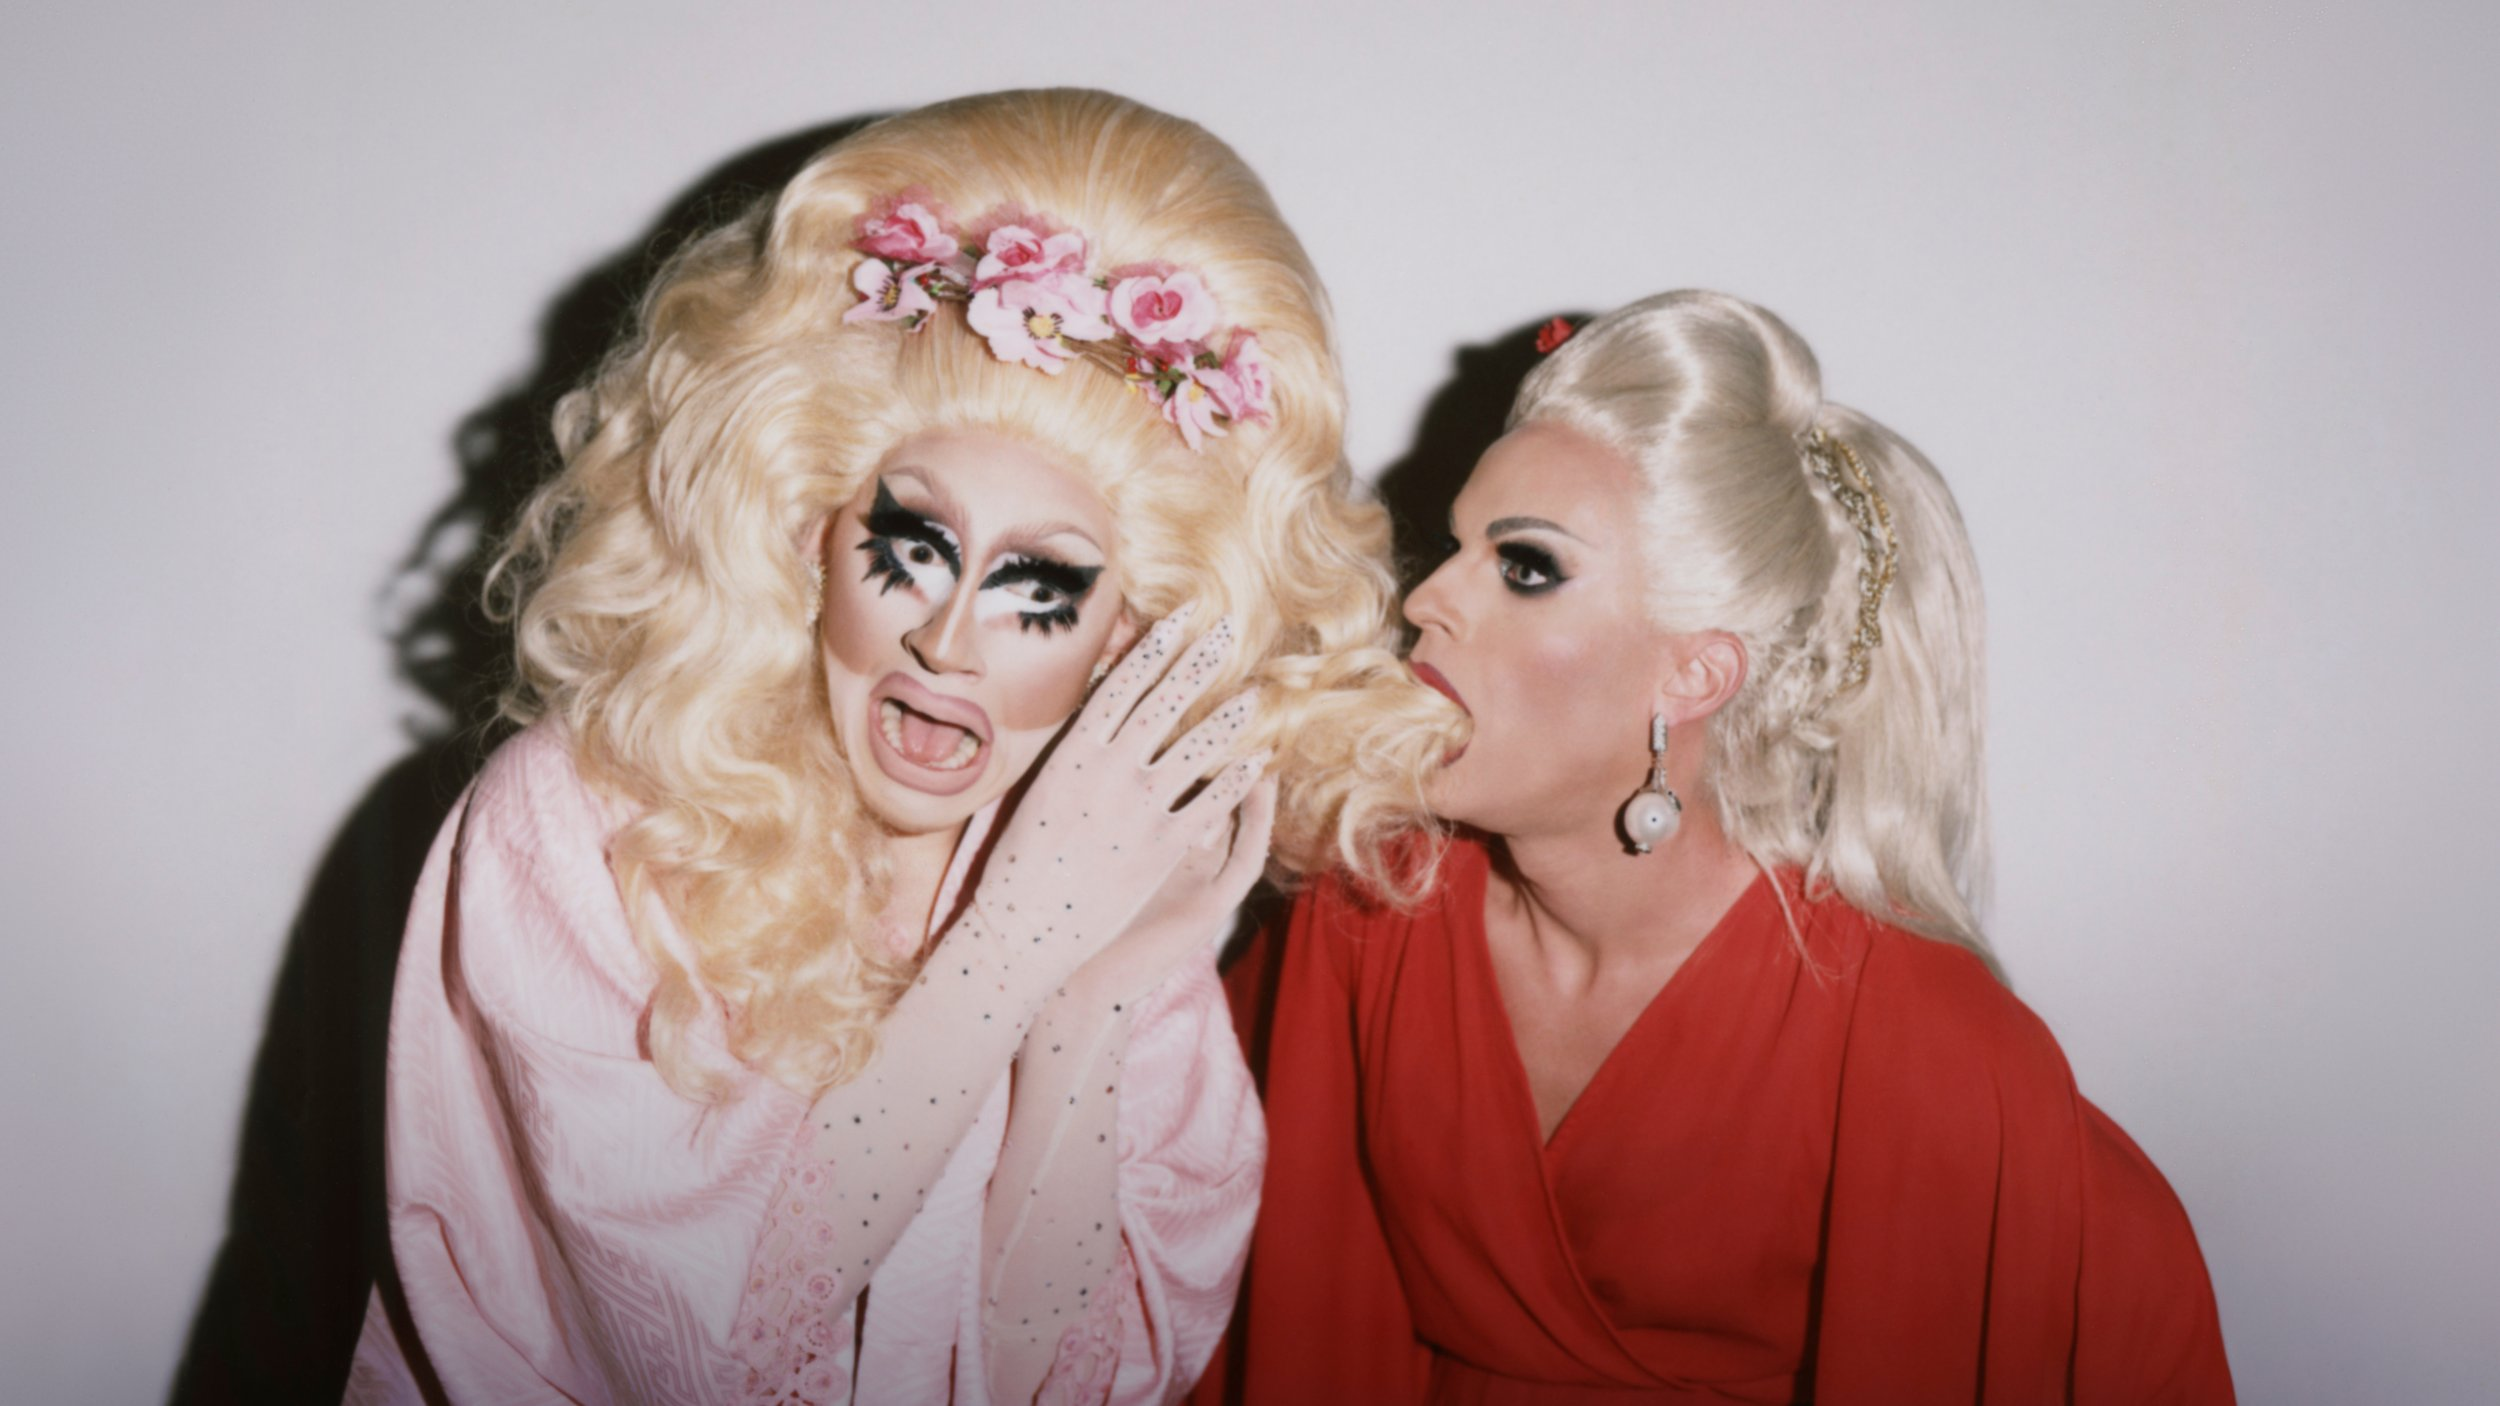 Cute Barbie Hd Wallpapers Rupaul S Drag Race Stars Trixie And Katya Talk Viceland